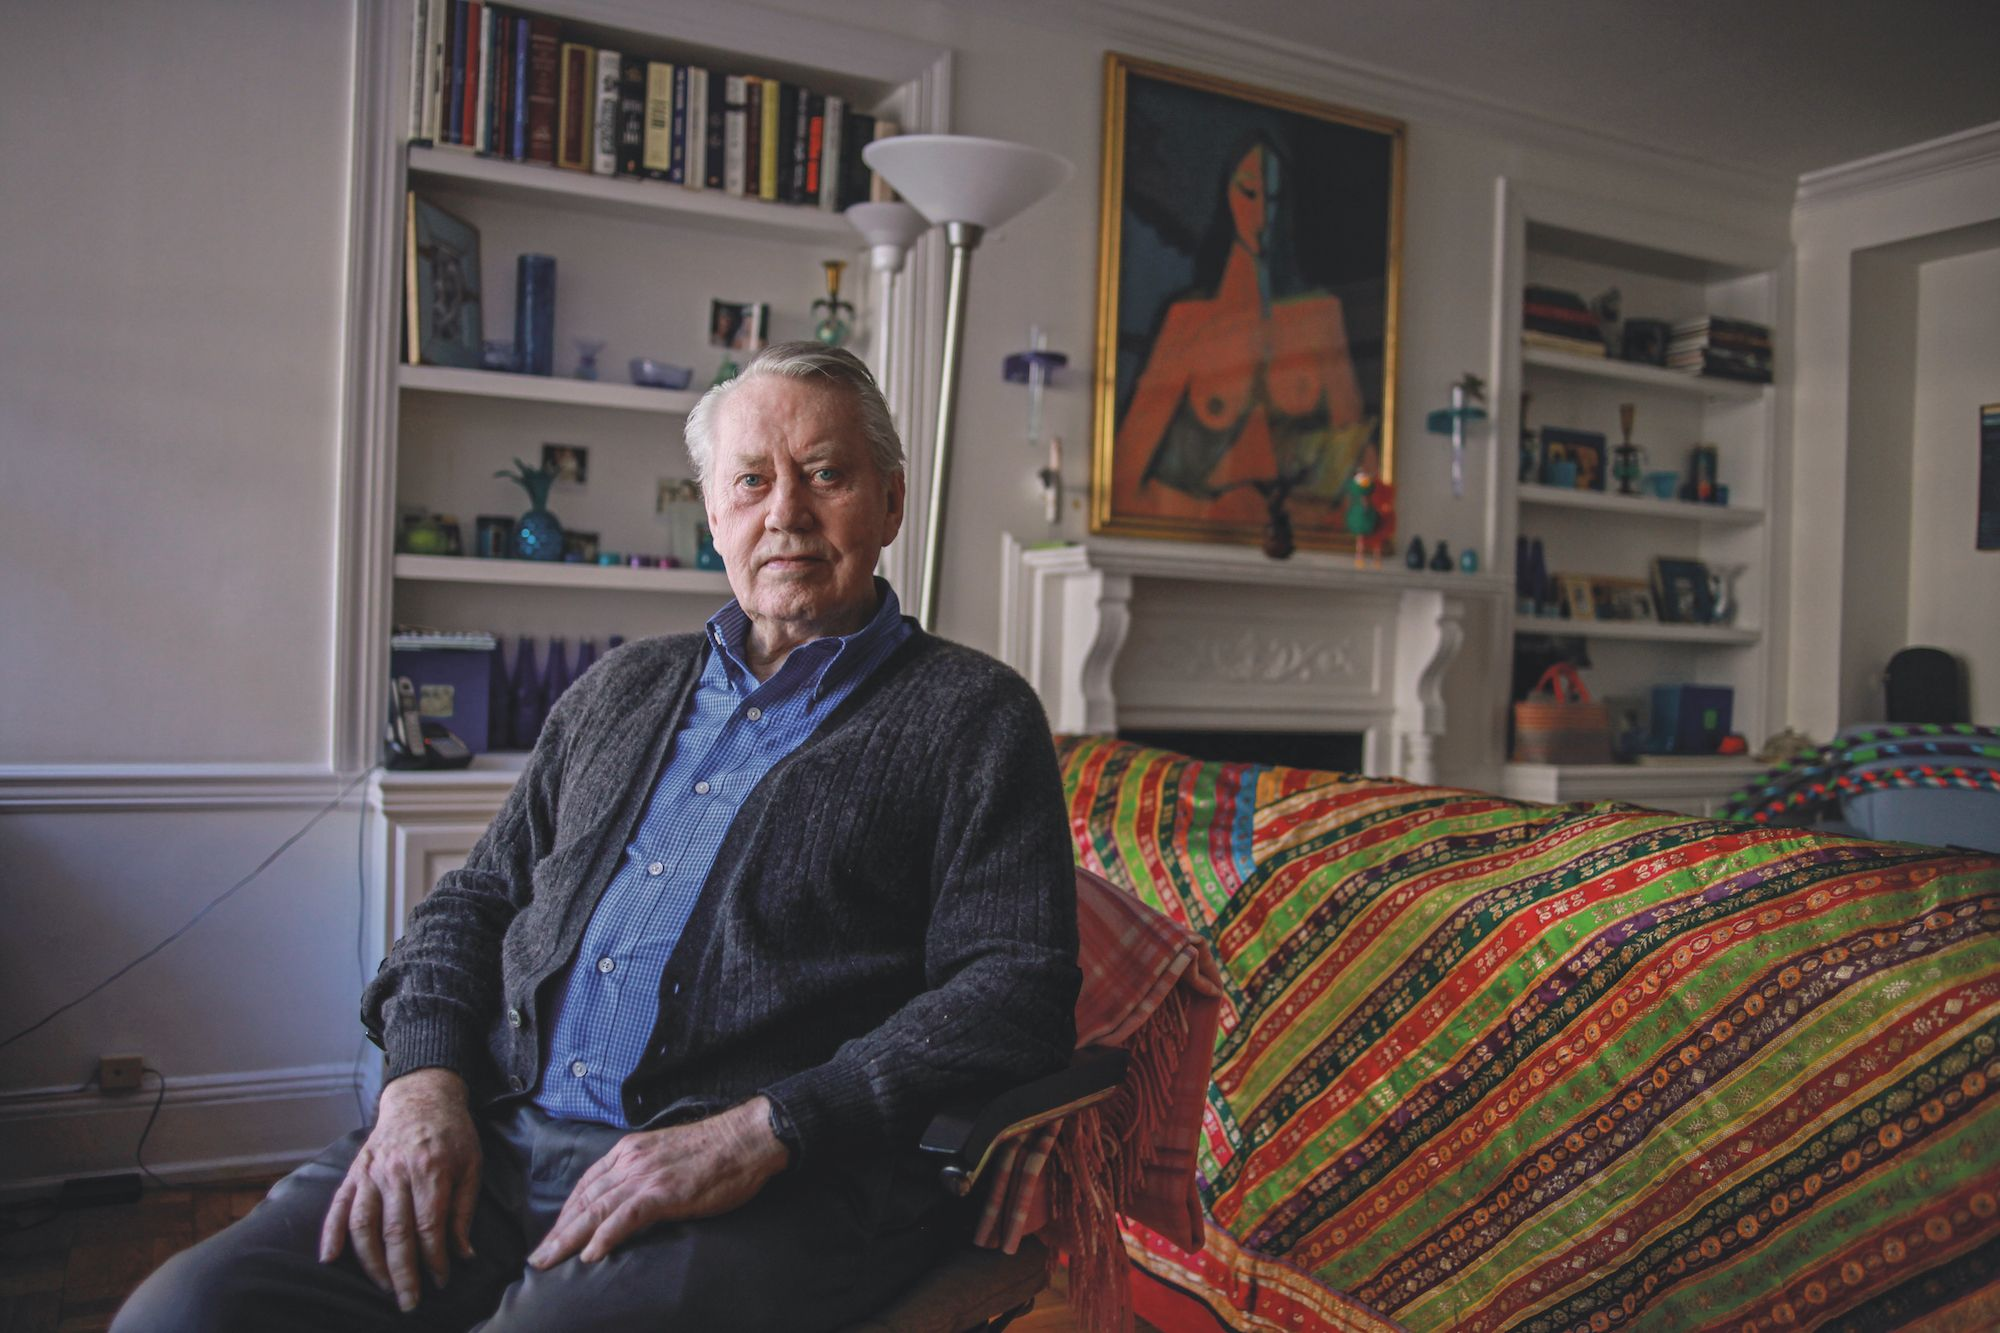 Why DFS Co-founder Chuck Feeney Gave Away His Billions By Age 85